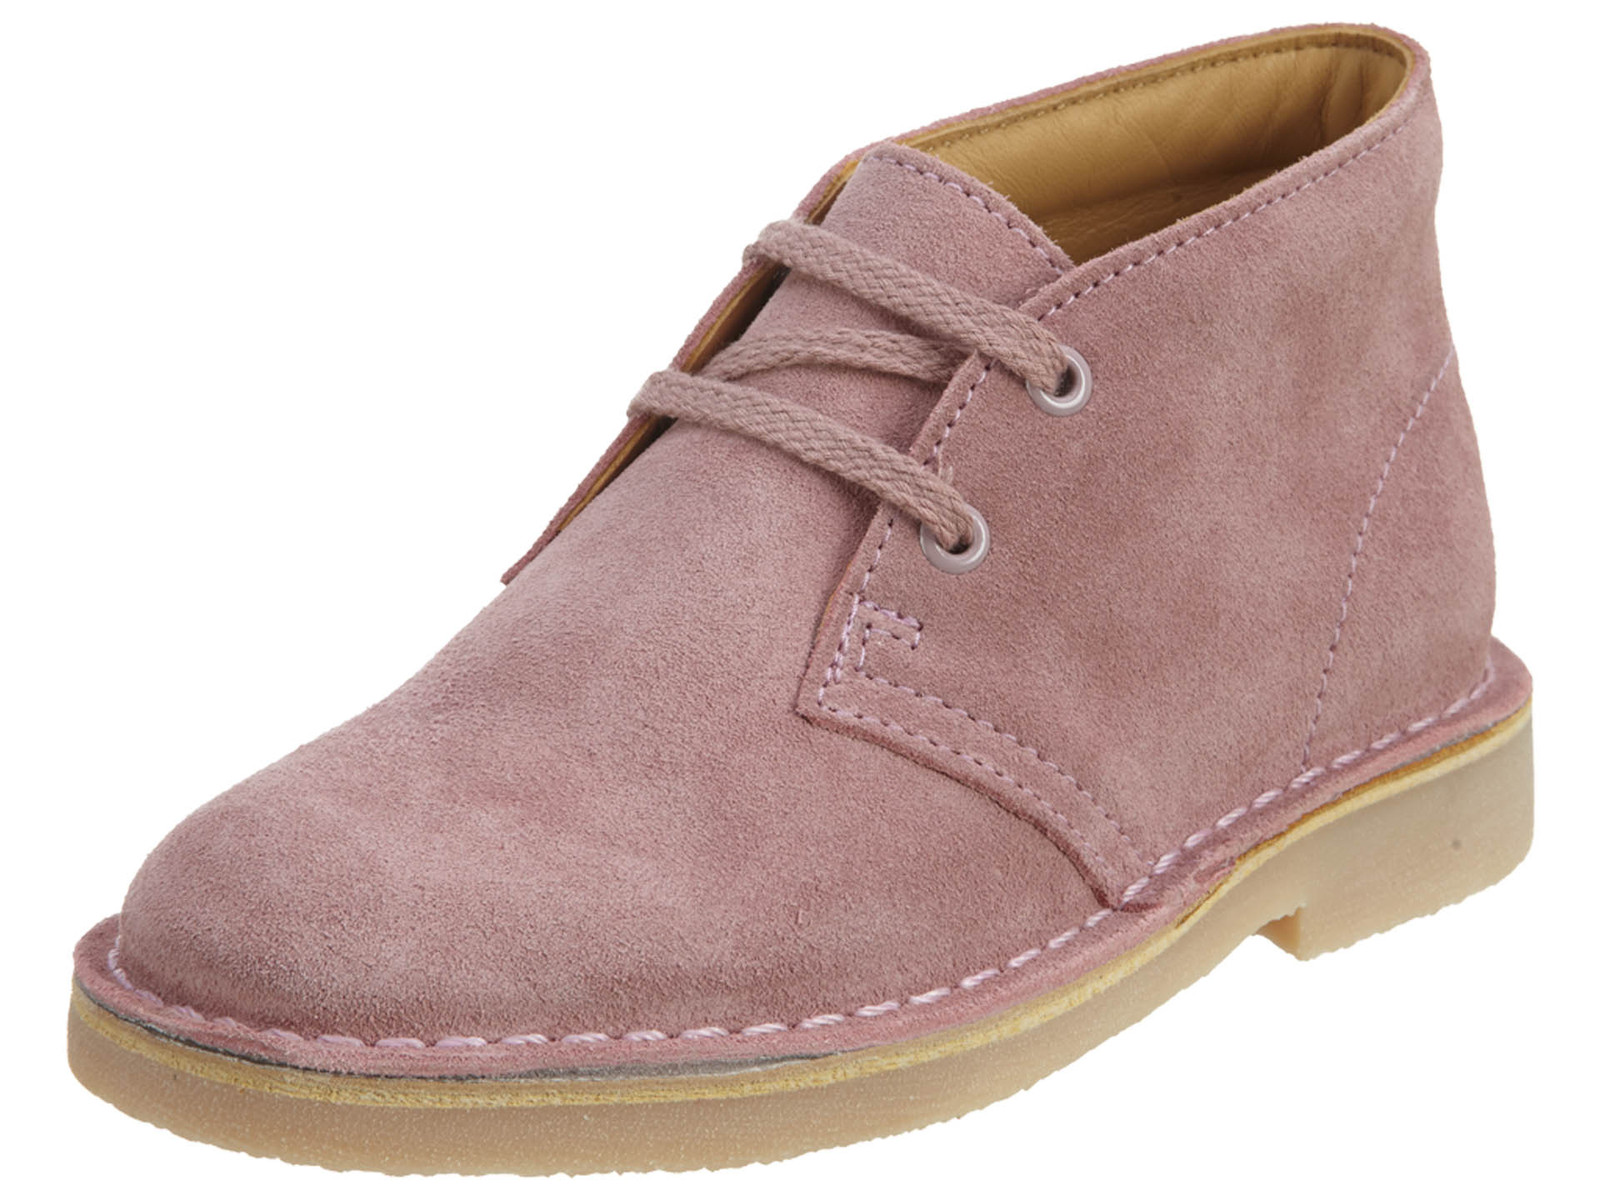 Clarks Desertboot Little Kids Style   26110530 -  61.00 · Advanced search  for Clark Shoes 4a39c4945